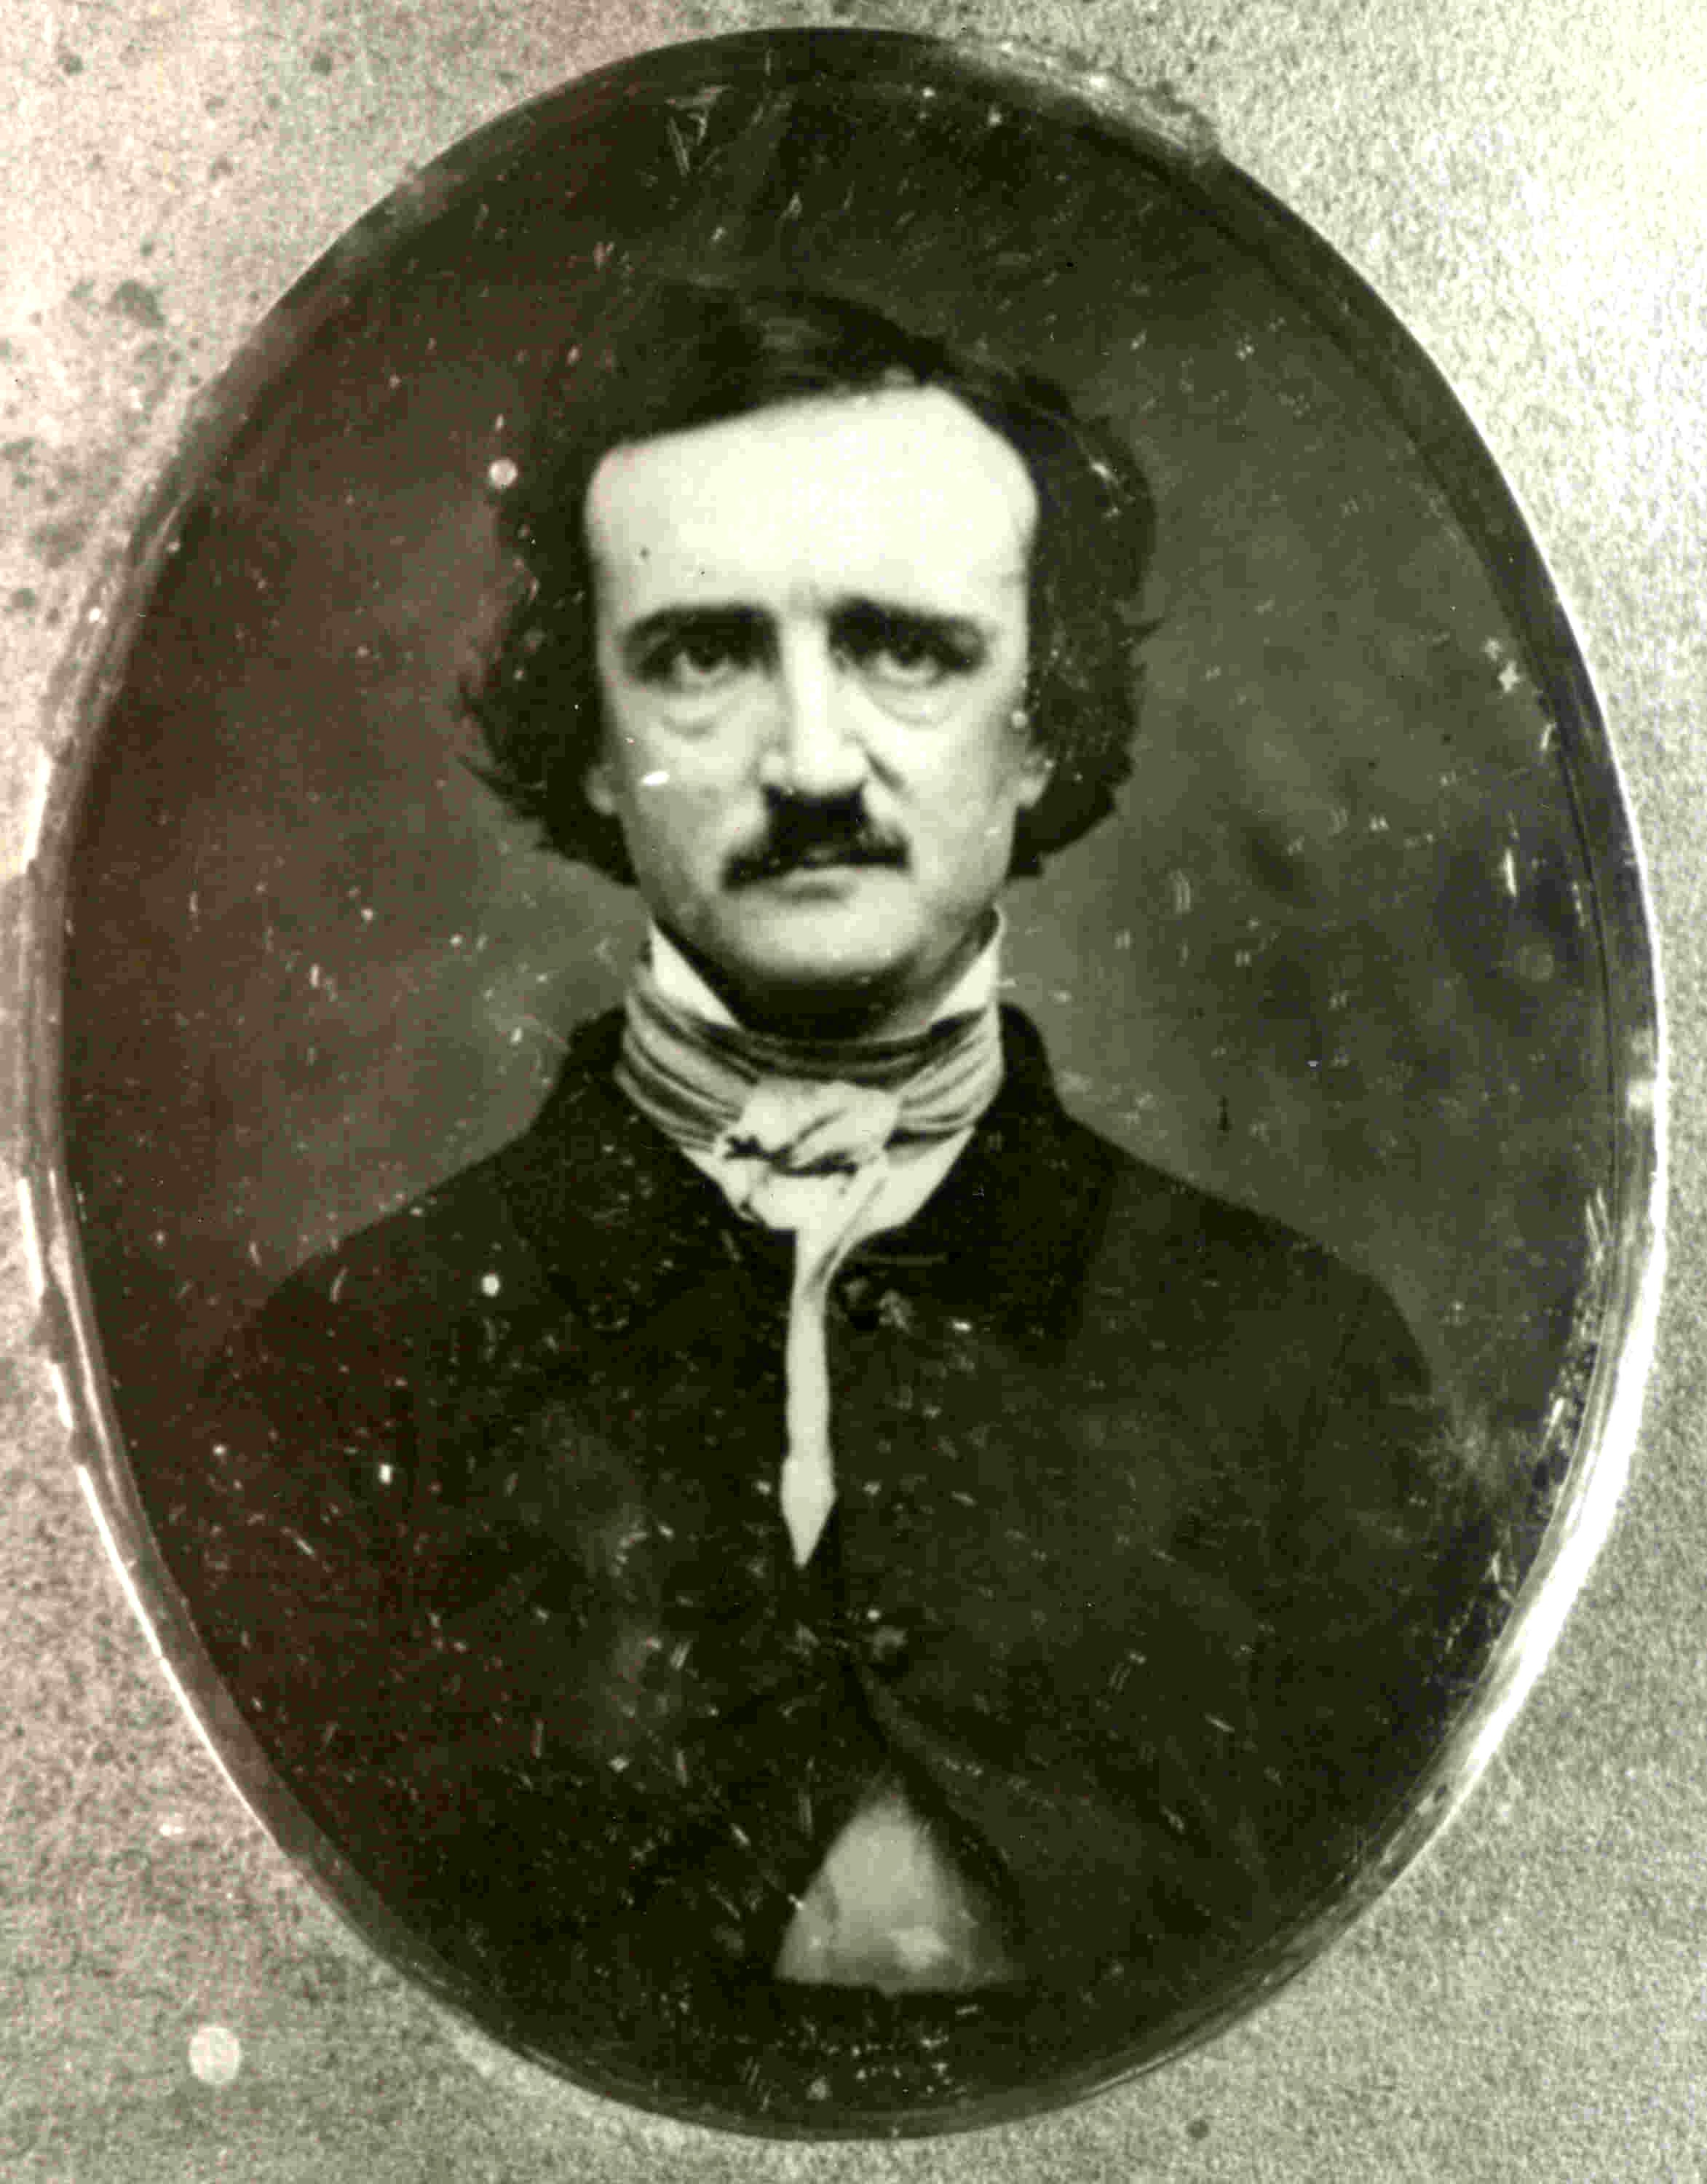 edgar alan poe Edgar allan poe: edgar allan poe (1809–49) was an american writer and poet who invented the modern detective story and created enduring tales of horror.